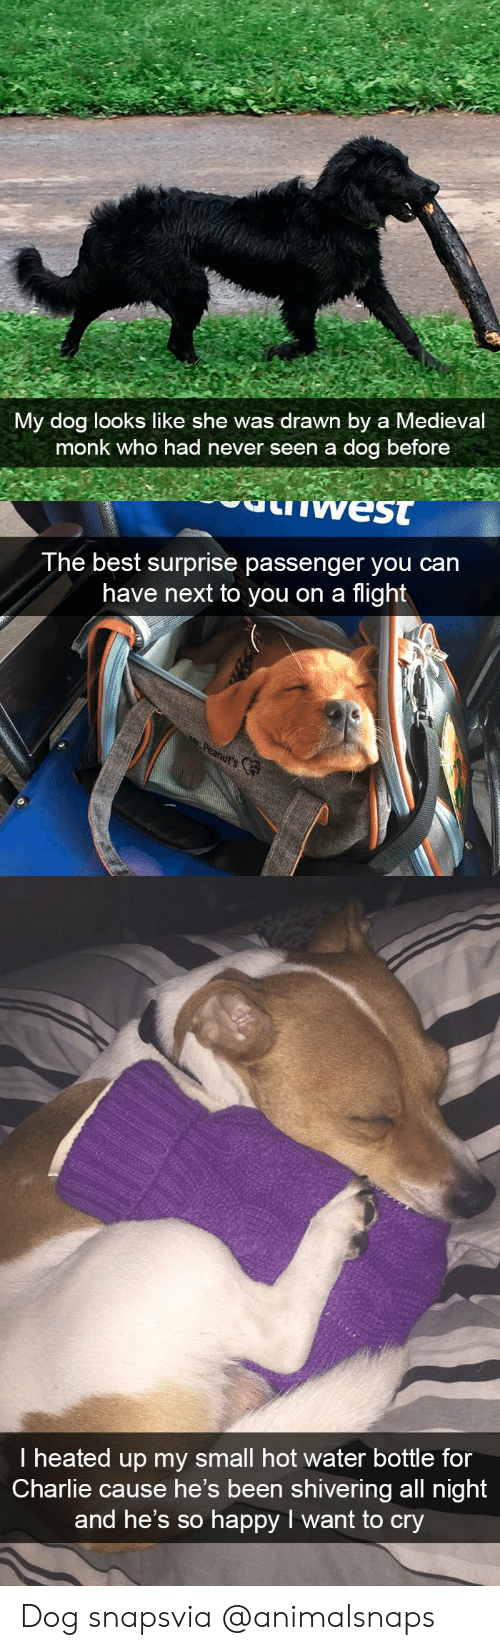 Heated: My dog looks like she was drawn by a Medieval  monk who had never seen a dog before   west  The best surprise passenger you can  have next to you on a flight   I heated up my small hot water bottle for  Charlie cause he's been shivering all night  and he's so happy I want to cry Dog snapsvia @animalsnaps​